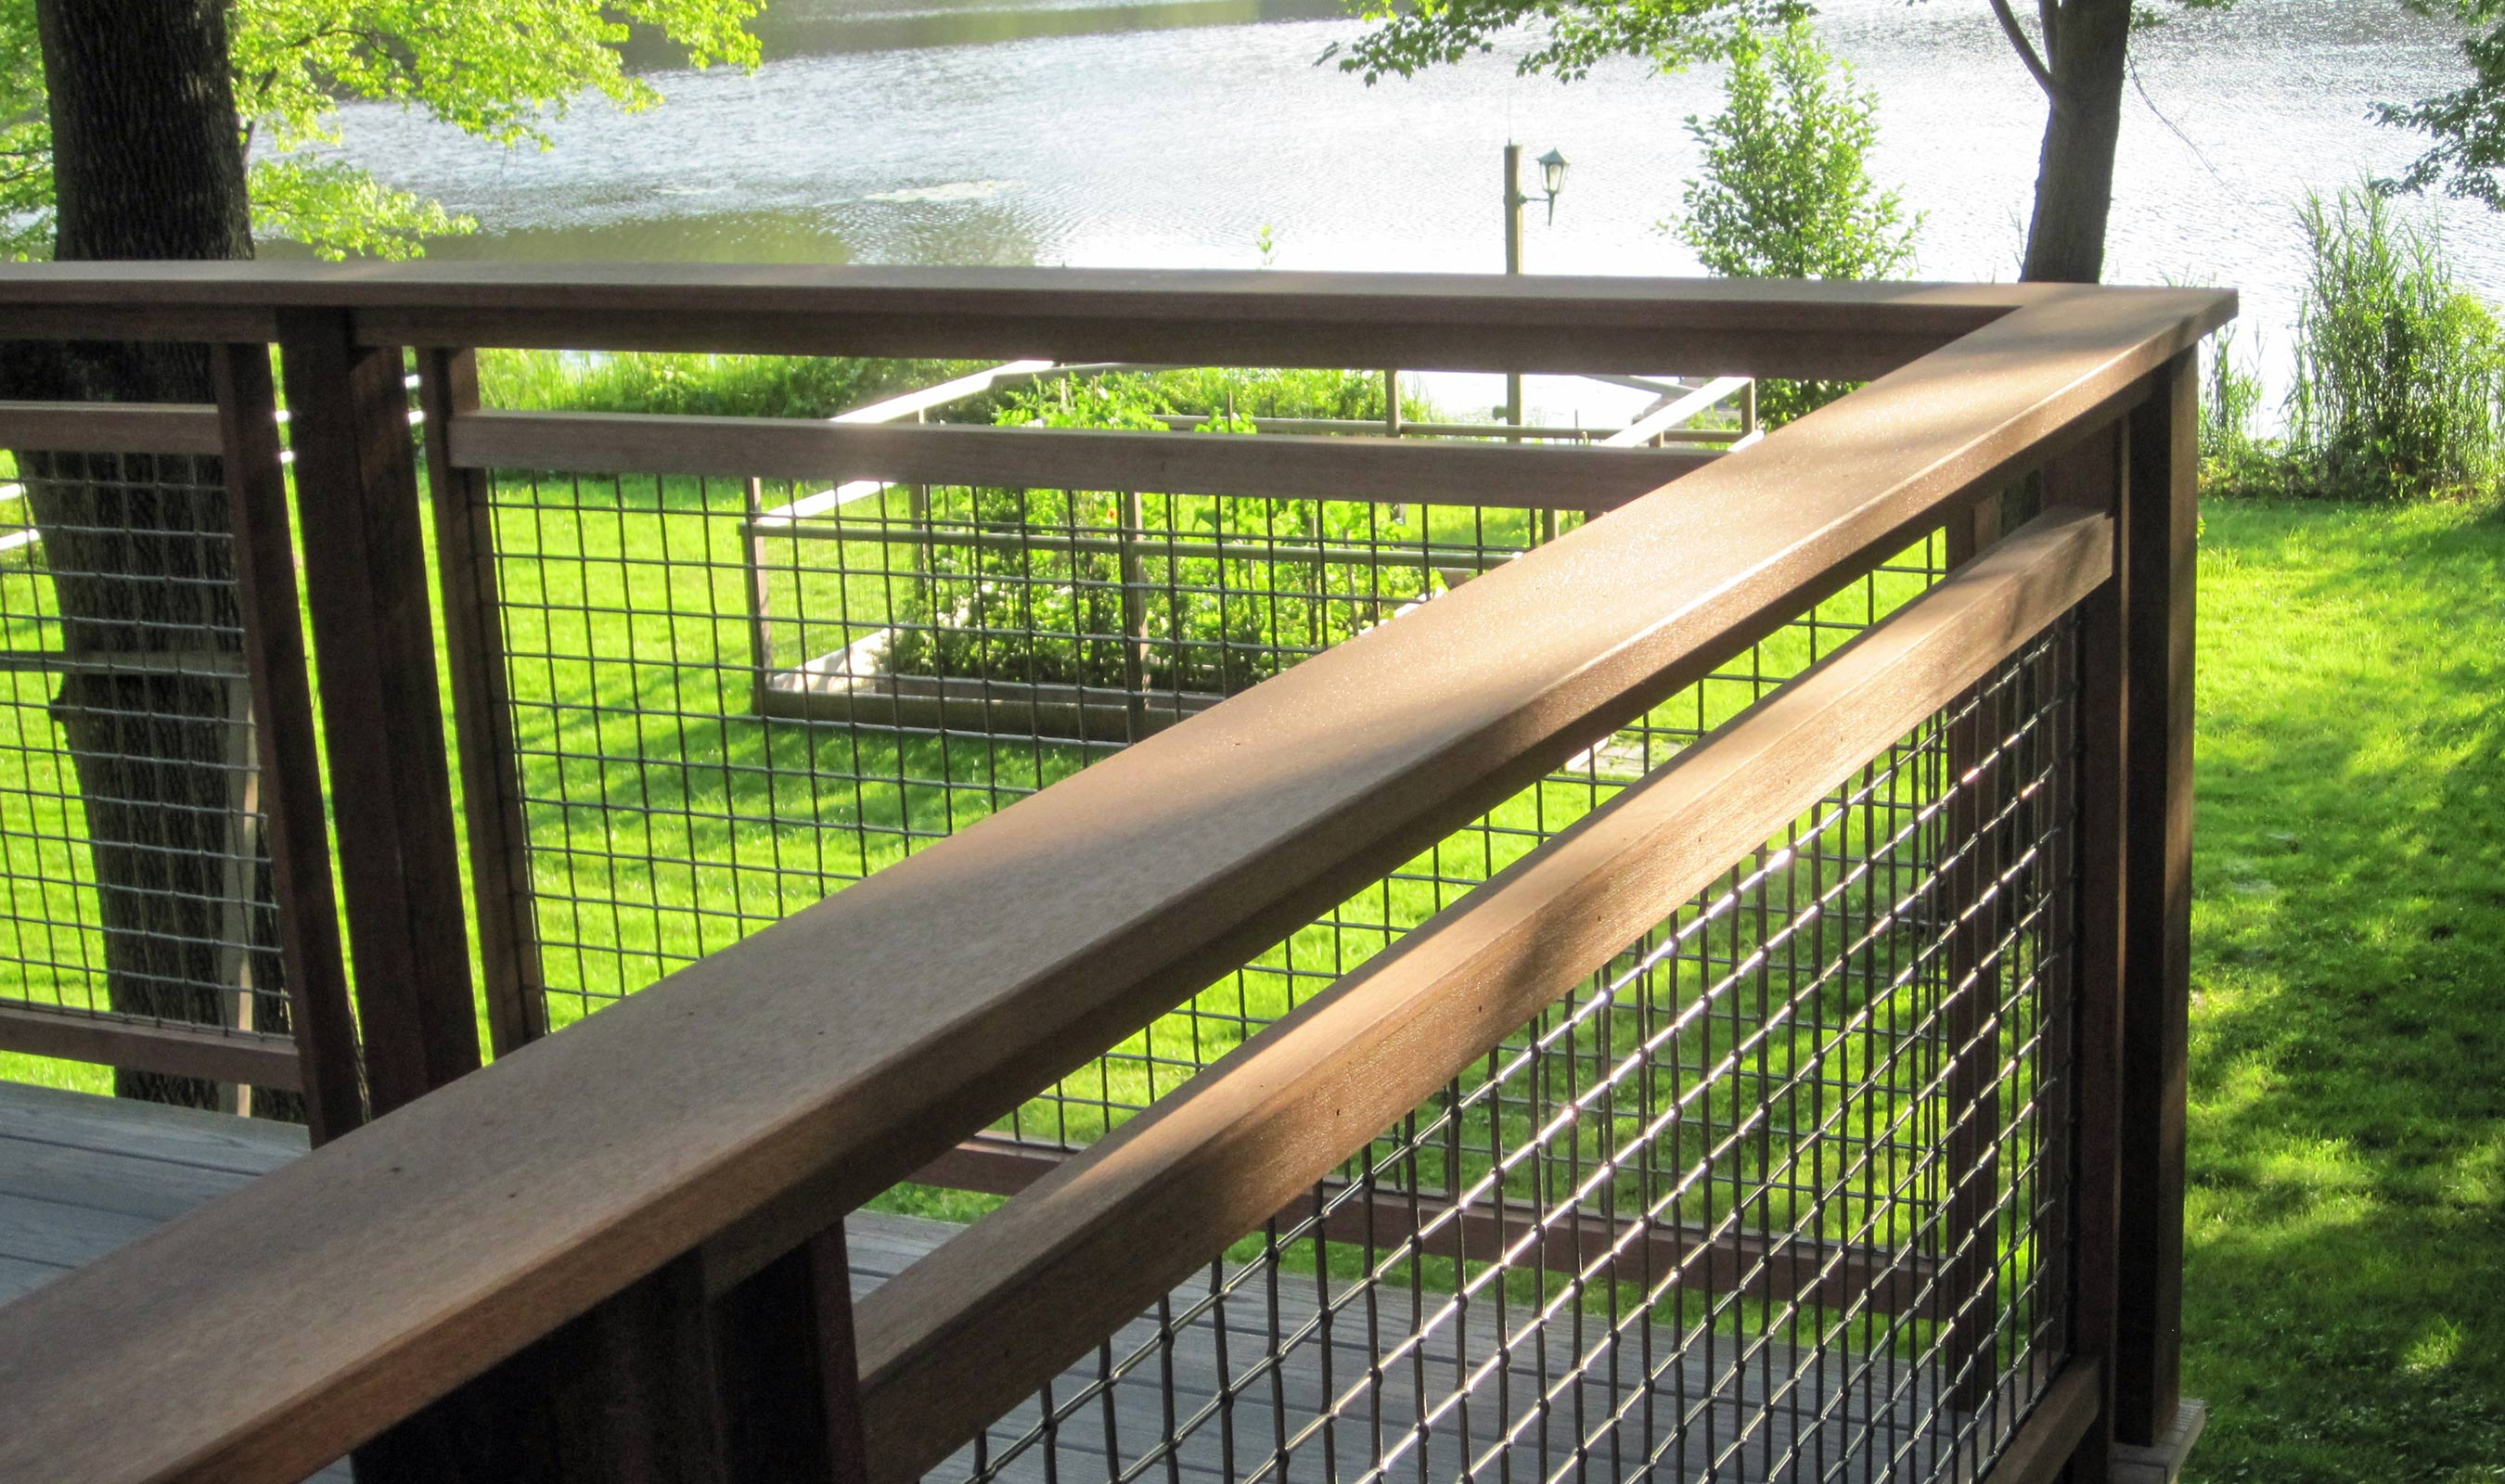 L-62 woven wire mesh is a sturdy mesh to use as railing infill for this back yard deck.